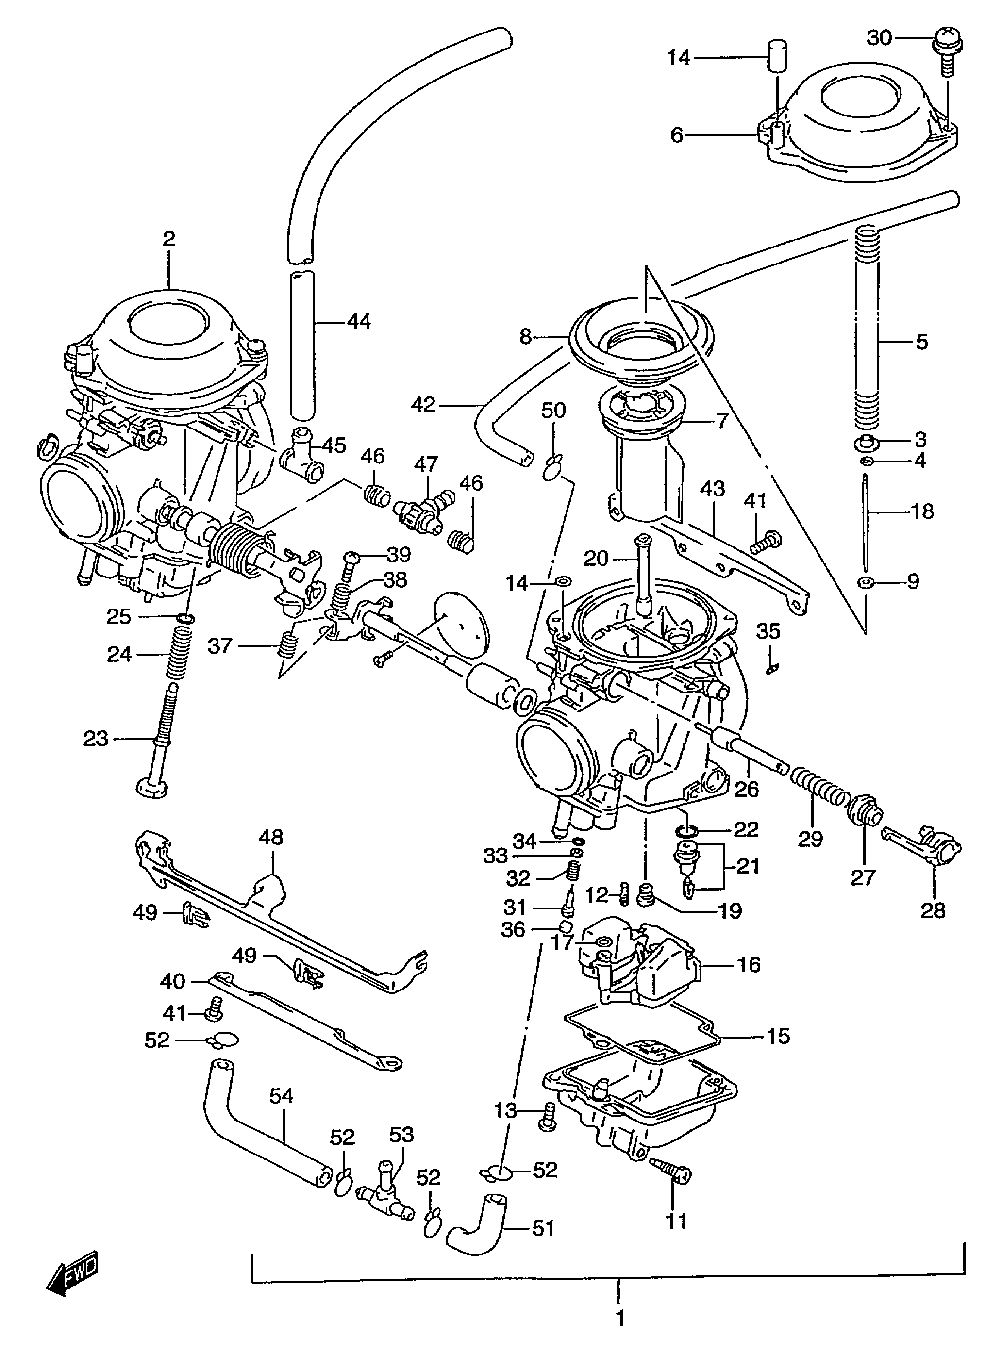 hight resolution of  fuse panel diagram gs500ecarburetorv 97 w 98 x 99 y